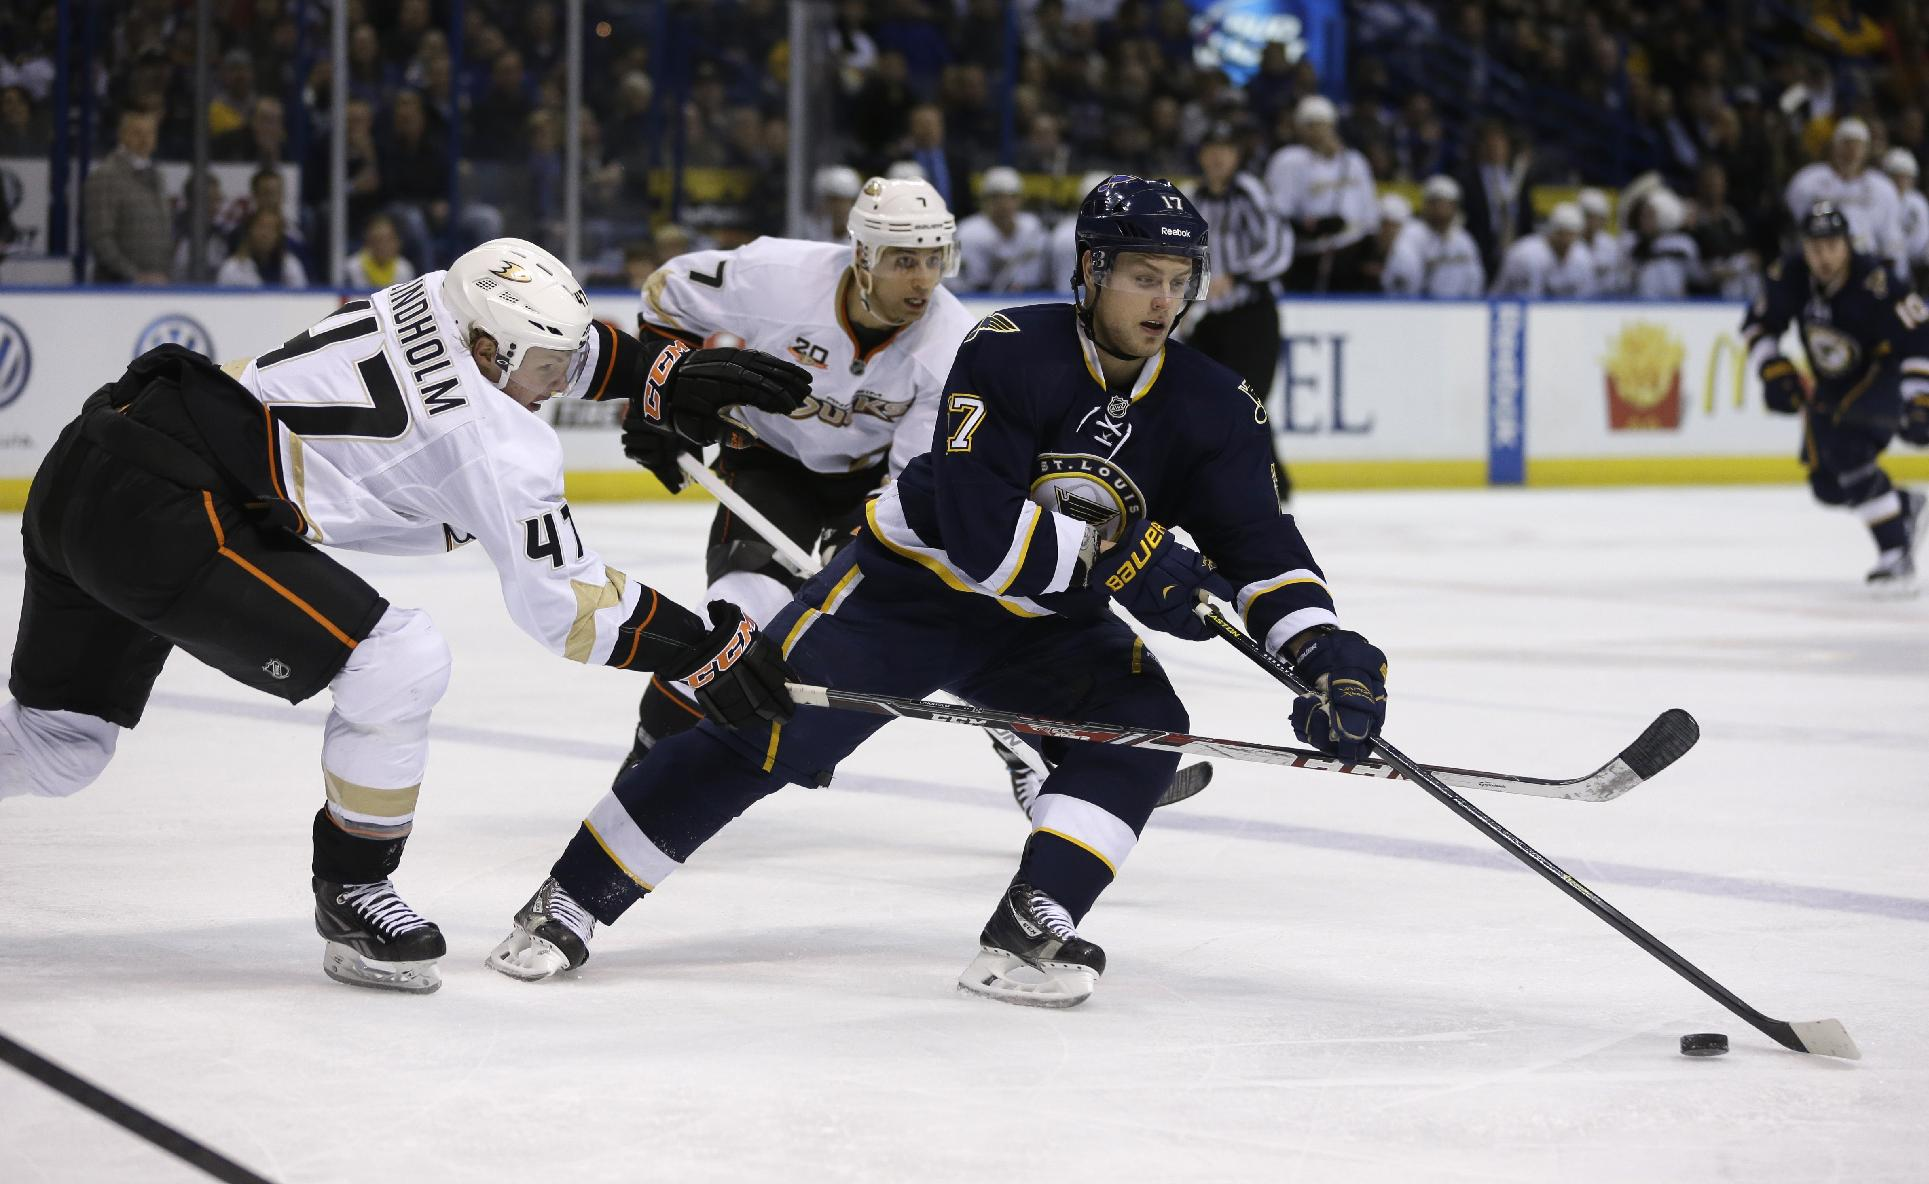 St. Louis Blues' Vladimir Sobotka, right, of the Czech Republic, controls the puck as Anaheim Ducks' Hampus Lindholm, left, of Sweden, and Andrew Cogliano, center, give chase during the second period of an NHL hockey game on Saturday, Jan. 18, 2014, in St. Louis